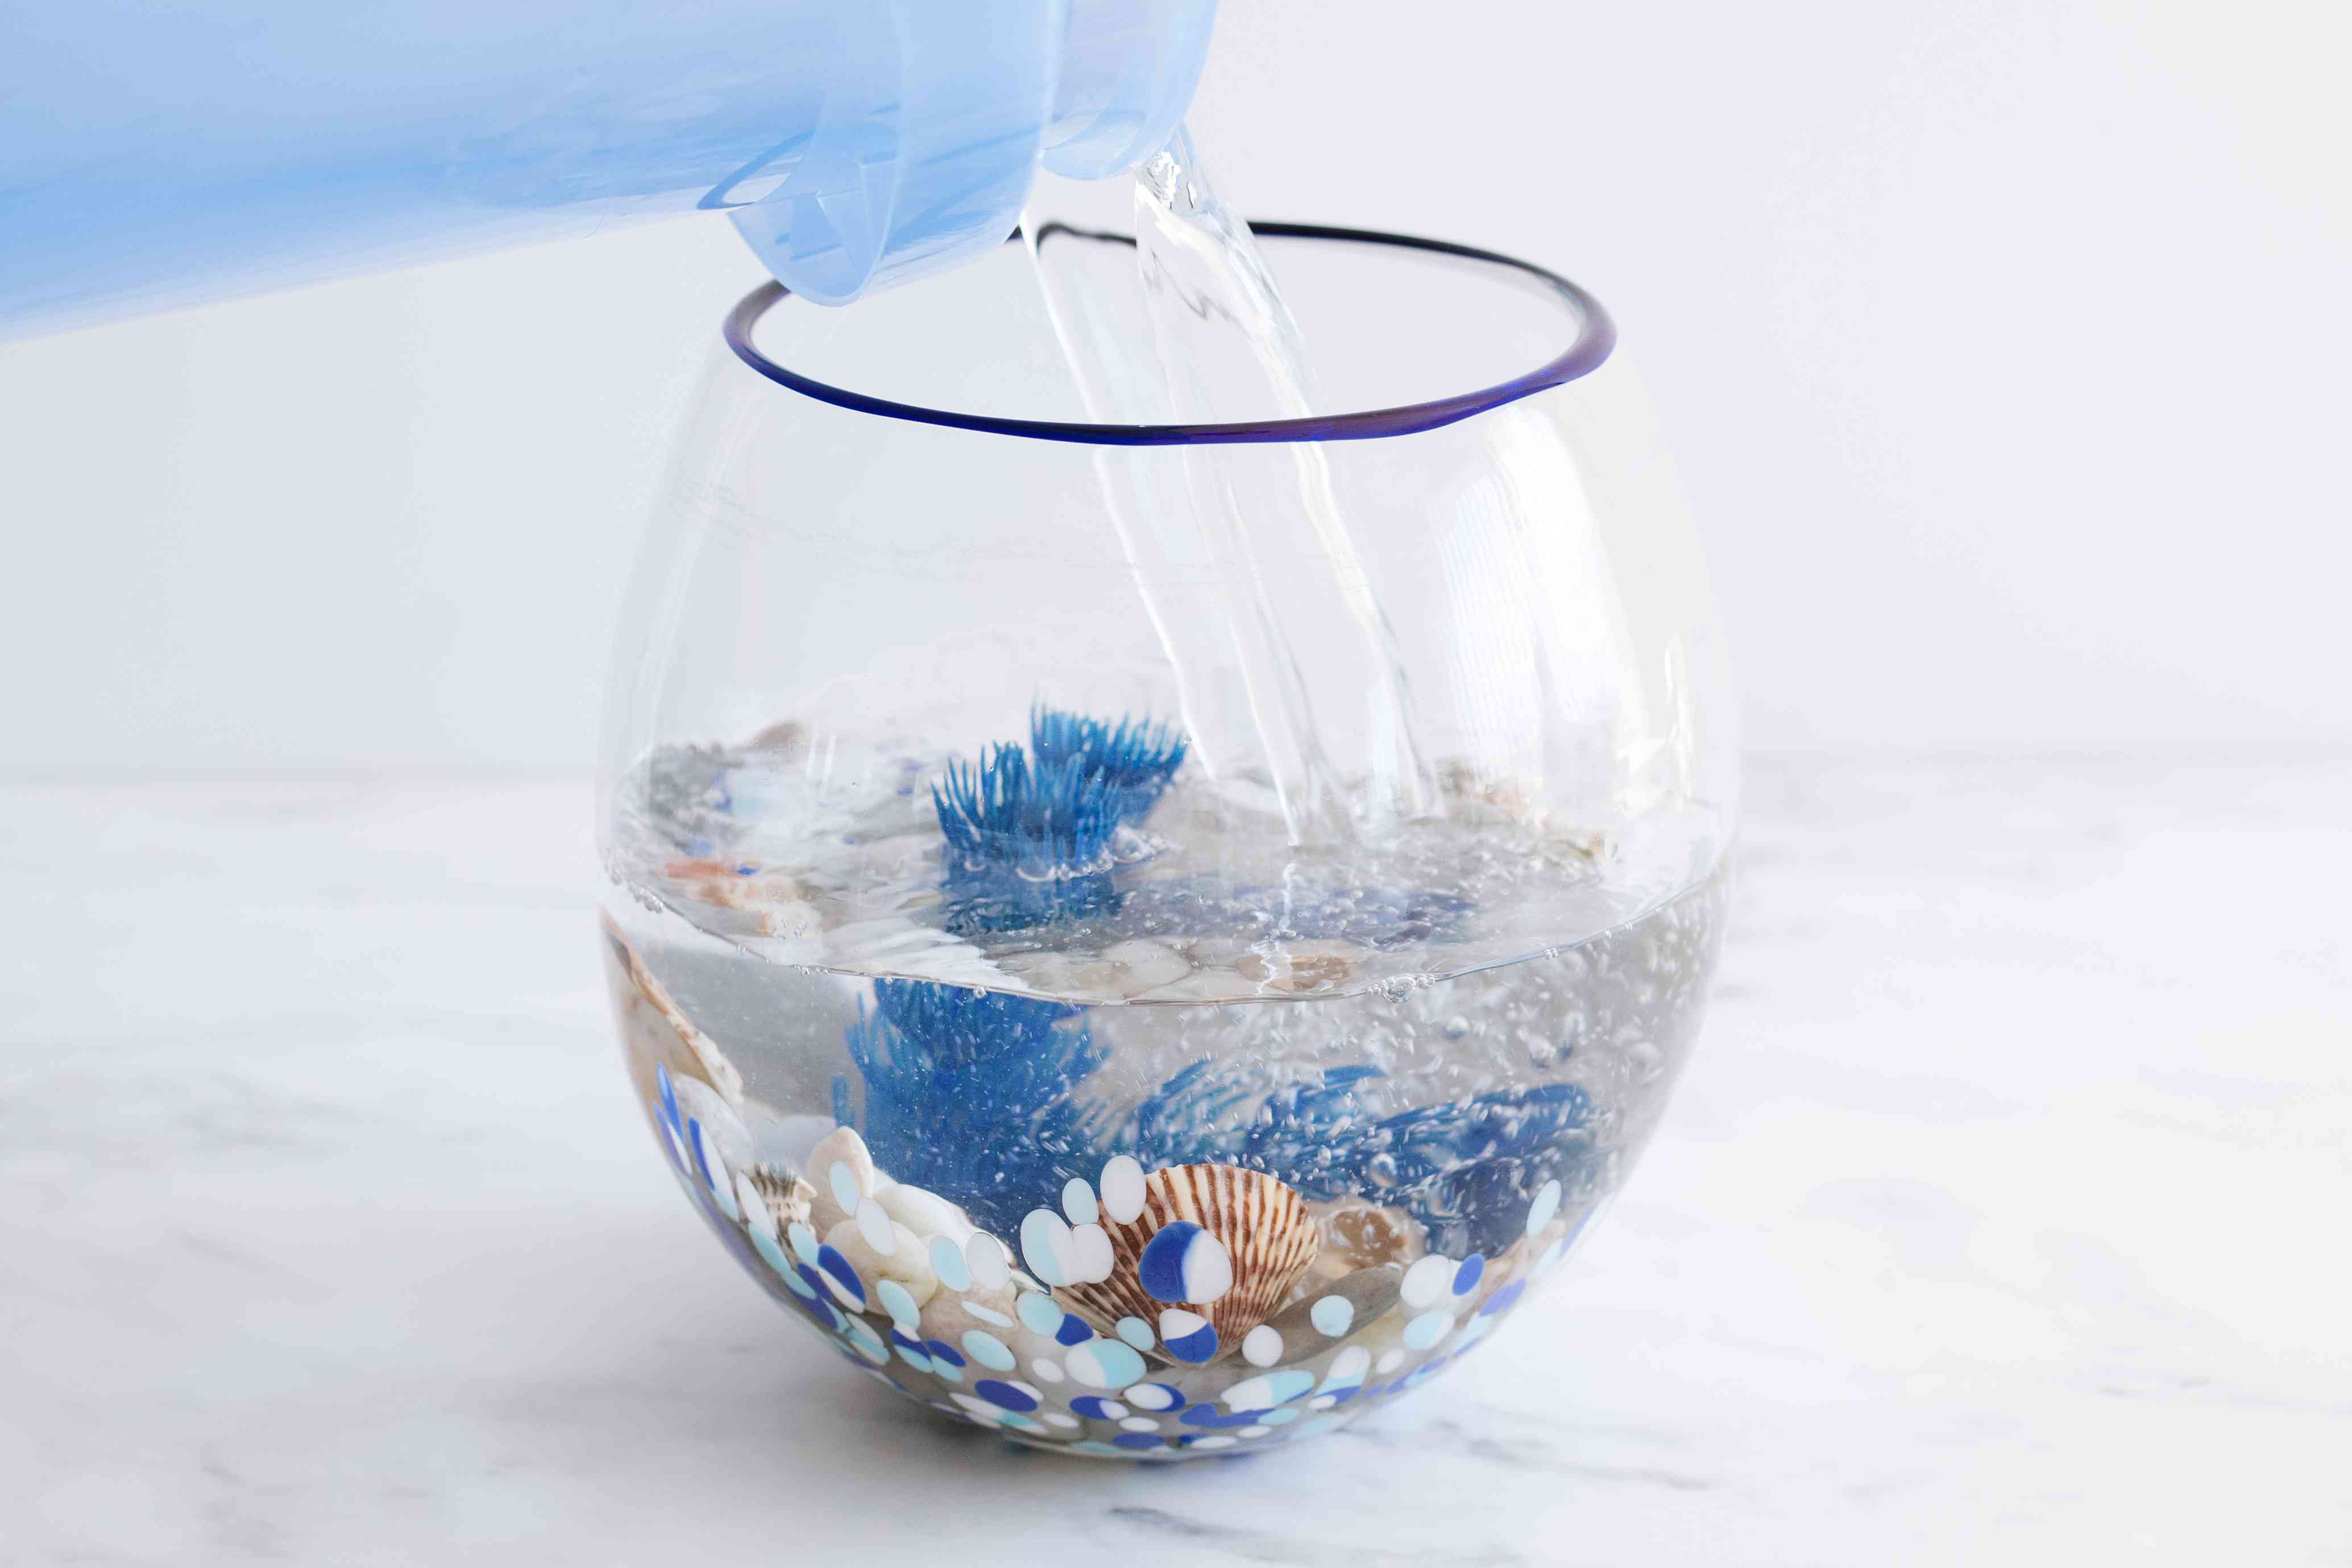 Fishbowl cleaned and reassembled with decorations and prepared water